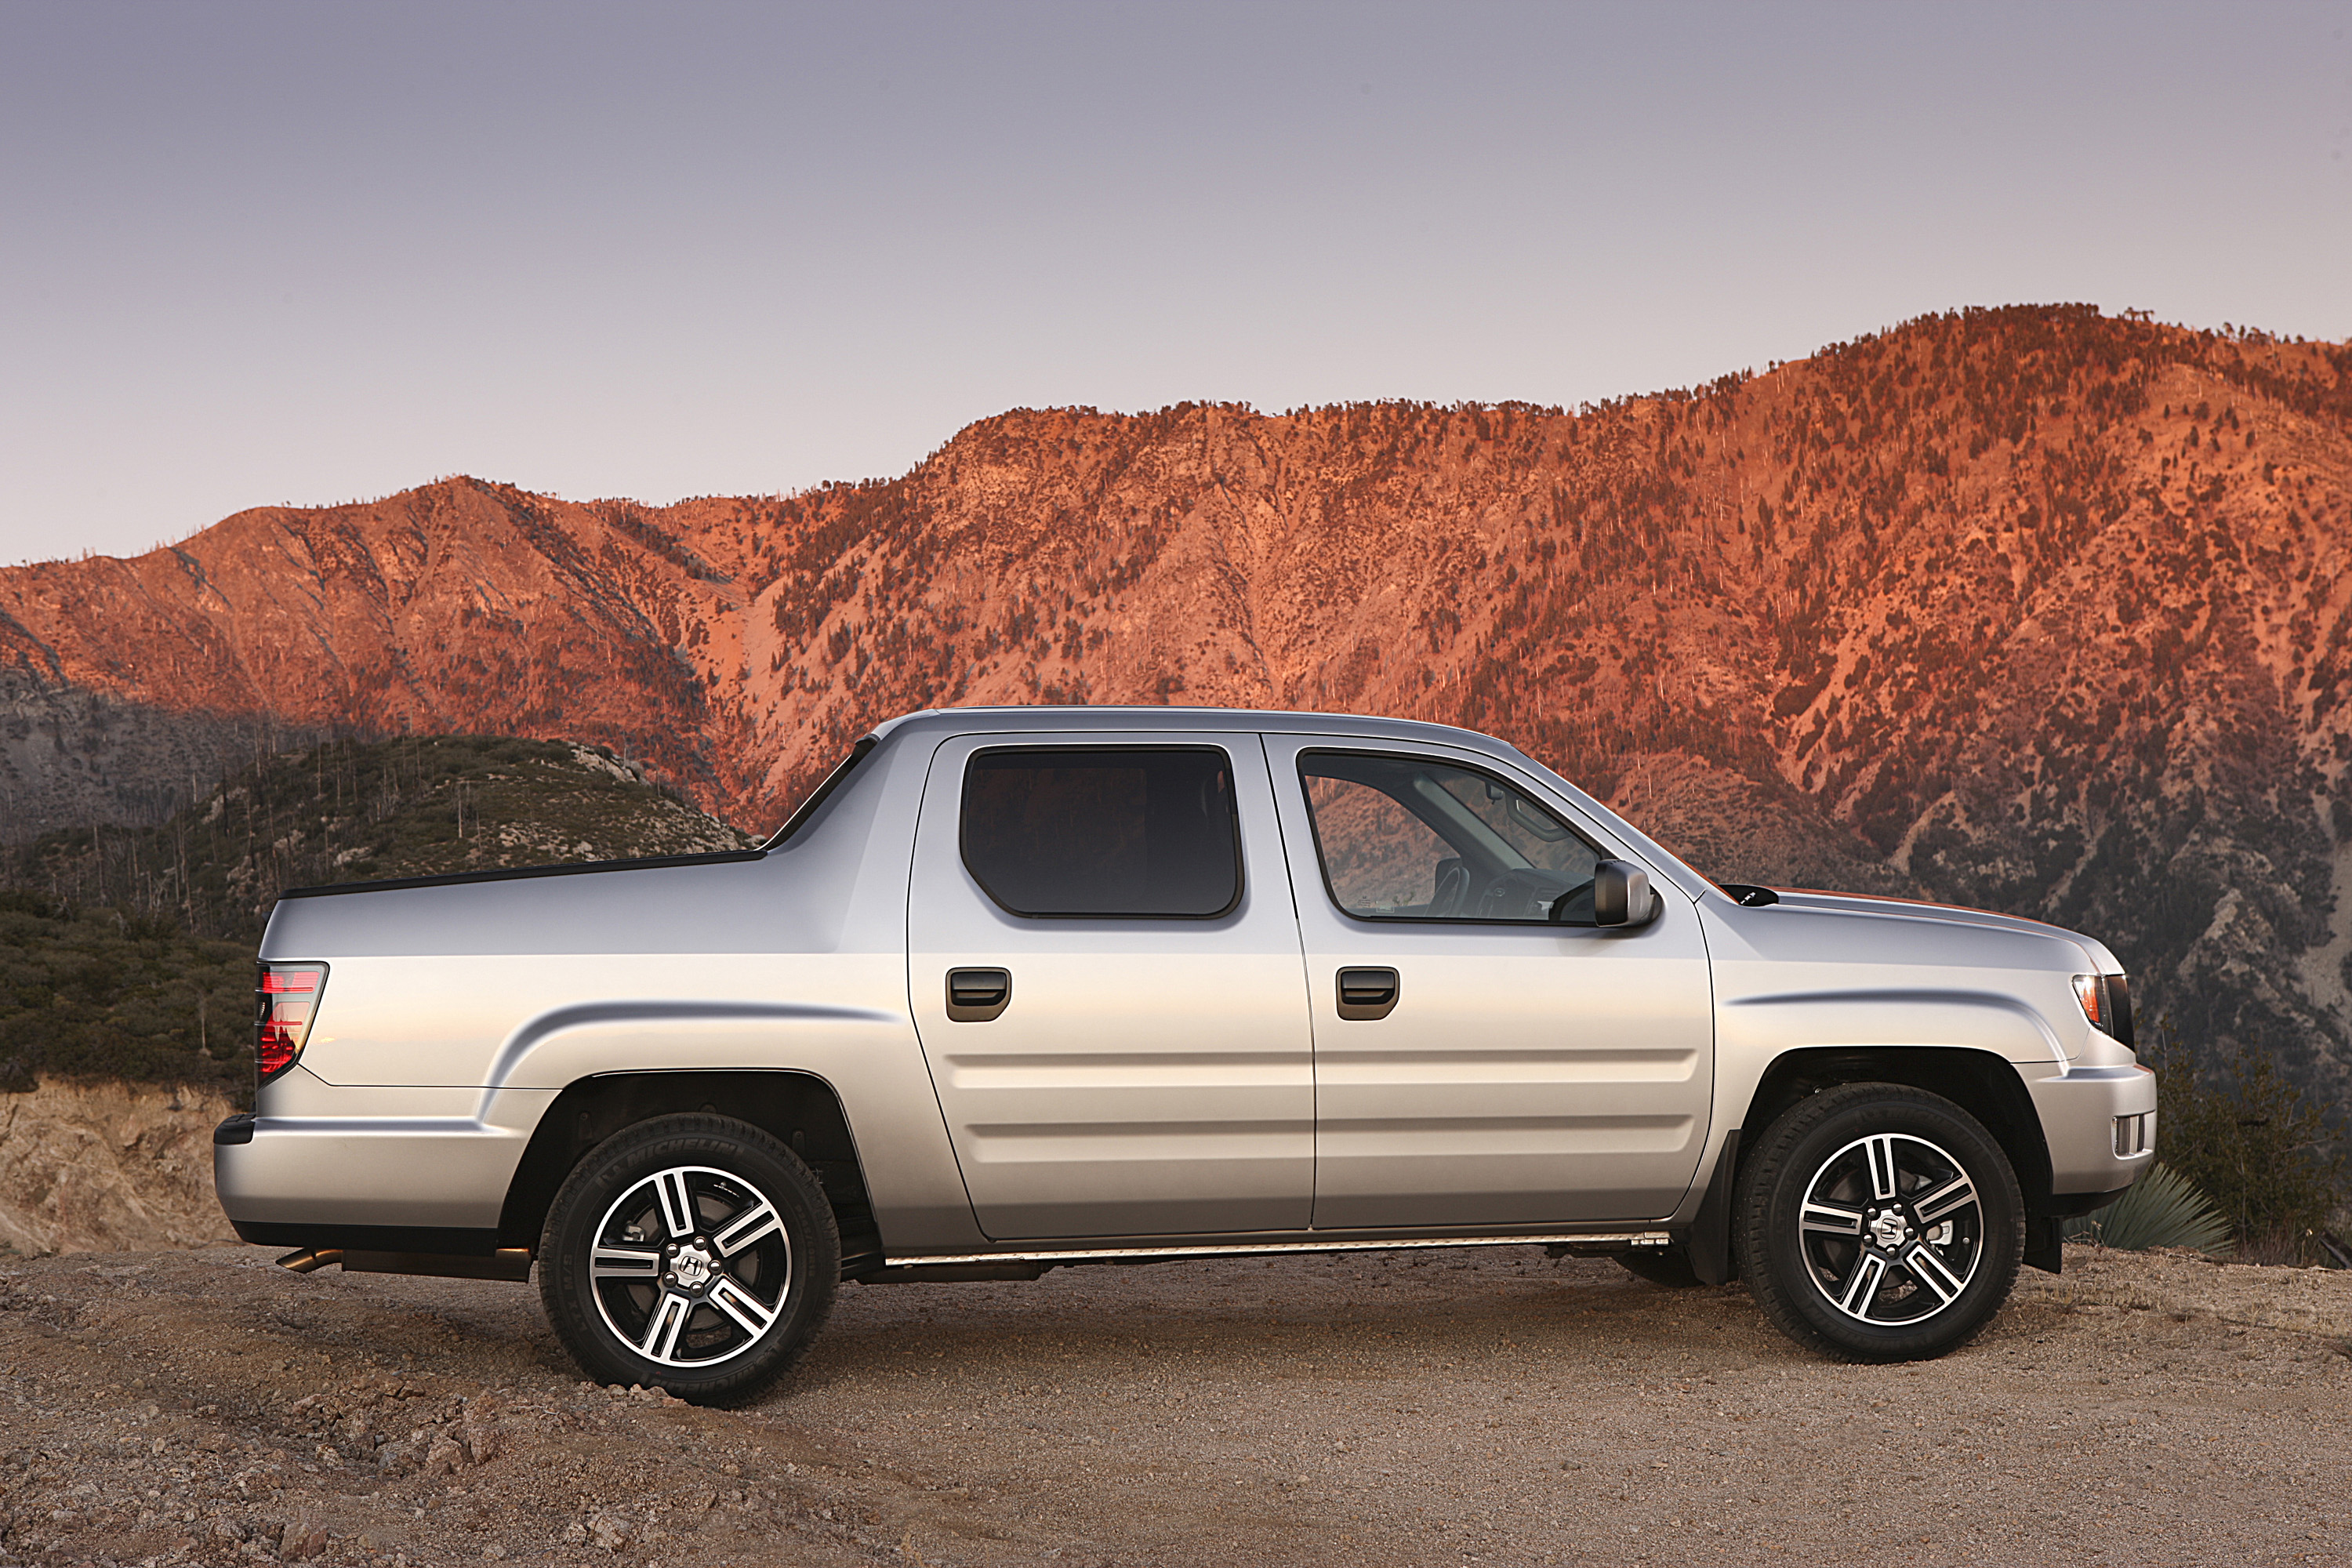 The 2014 Model Year Will Be The Final Year For The Current Generation  Ridgeline, Honda Will Put It To Rest And Focus On Developing The Next  Generation ...